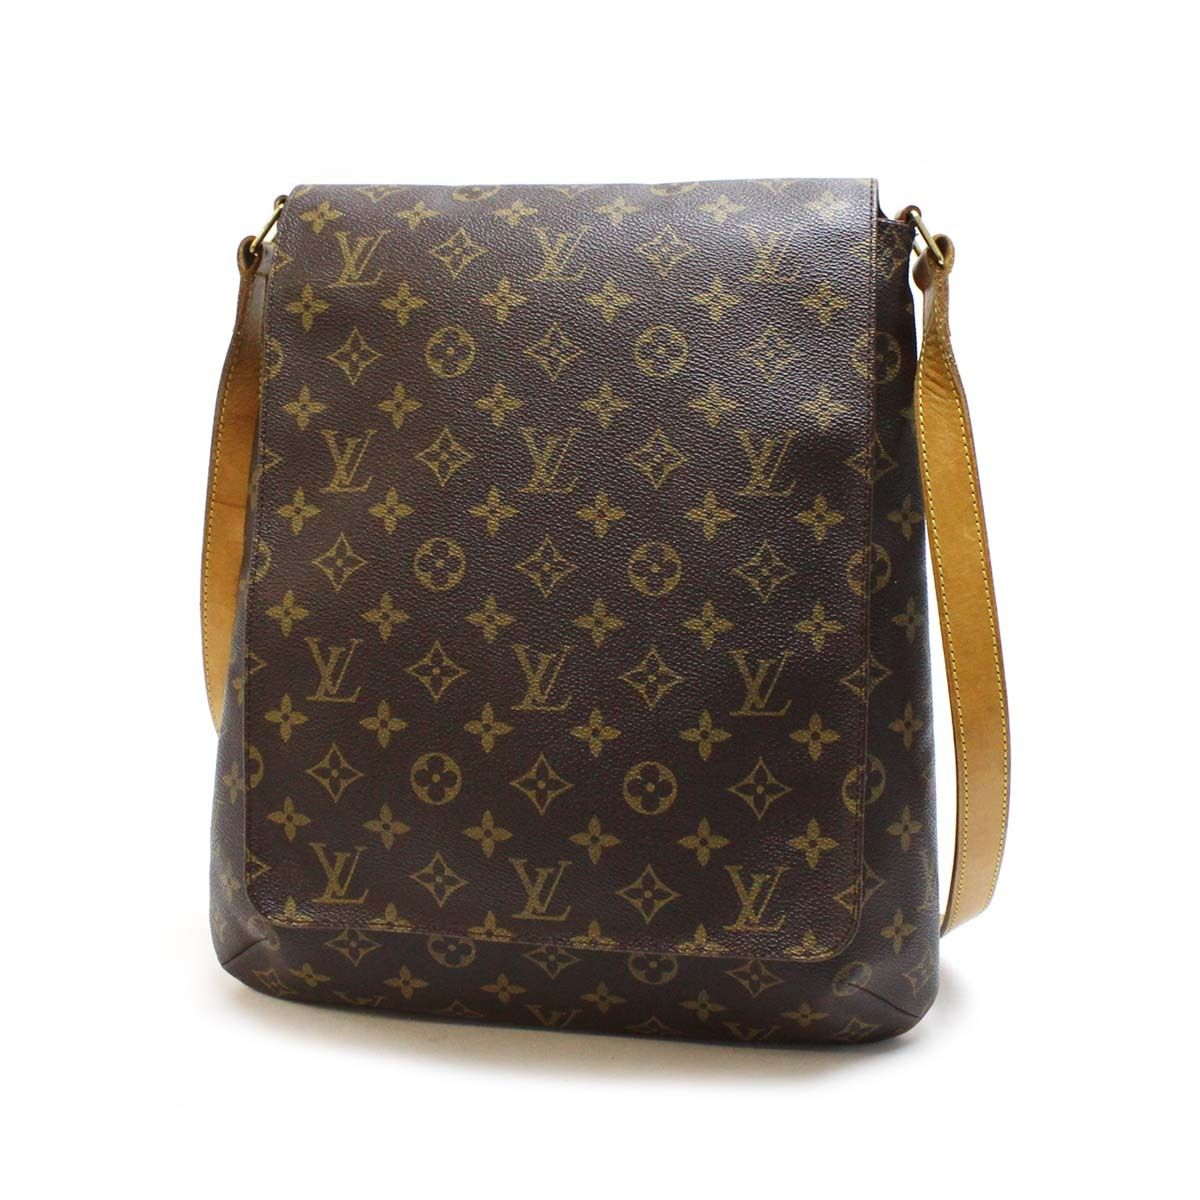 louis vuitton monogram musette salsa gm xl cross body bag my frugal fashionista. Black Bedroom Furniture Sets. Home Design Ideas